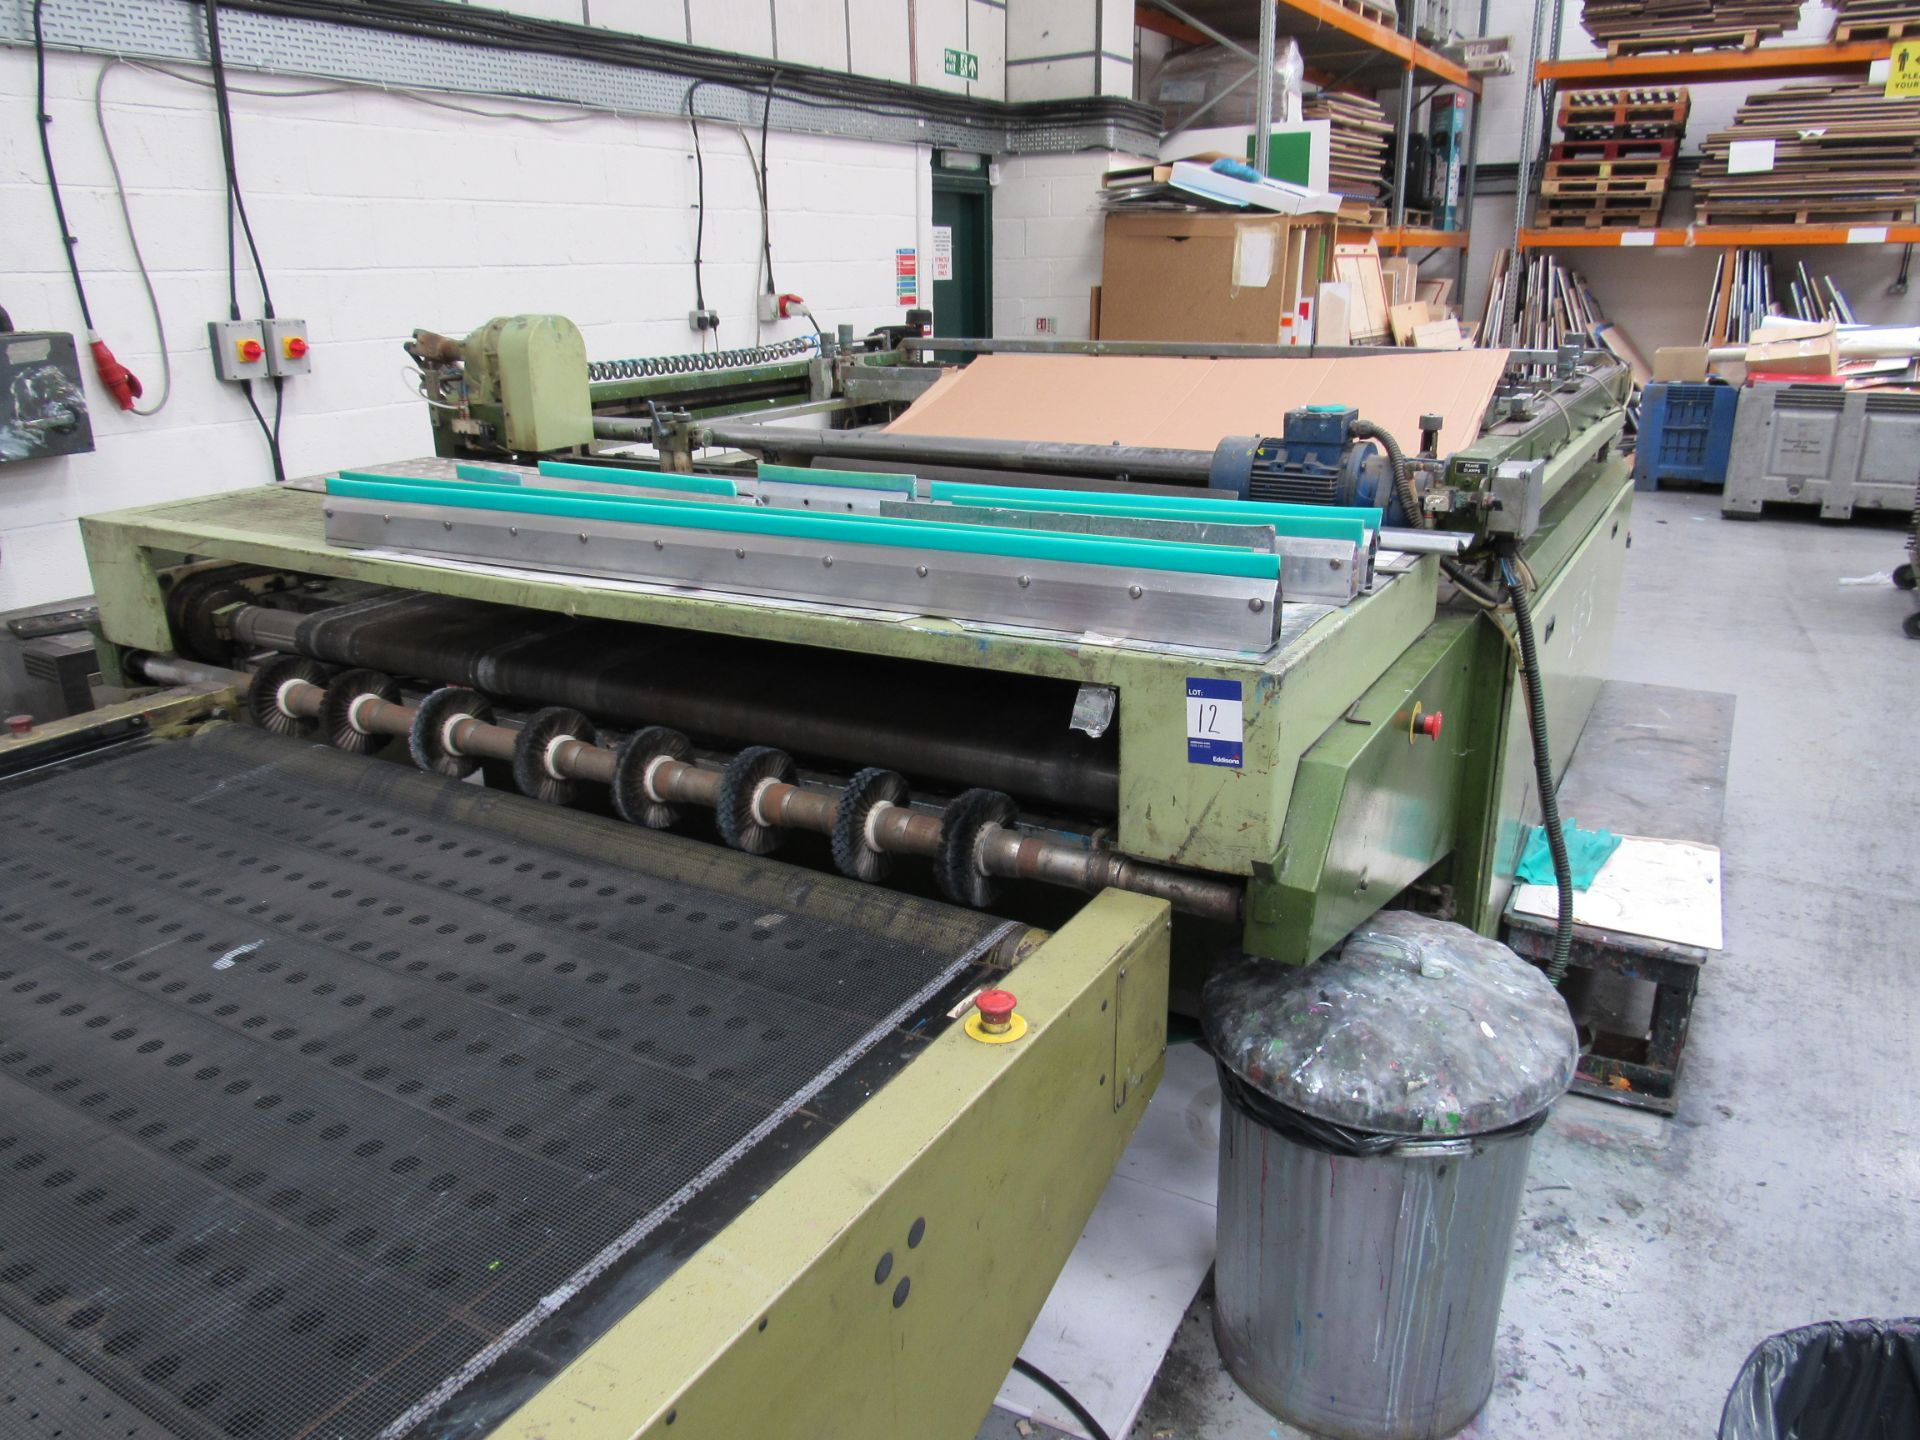 Sias Print Serifast 117.180 Screen Printer Serial Number 88745 with Natgraph 155-2000E UV Dryer Line - Image 4 of 10